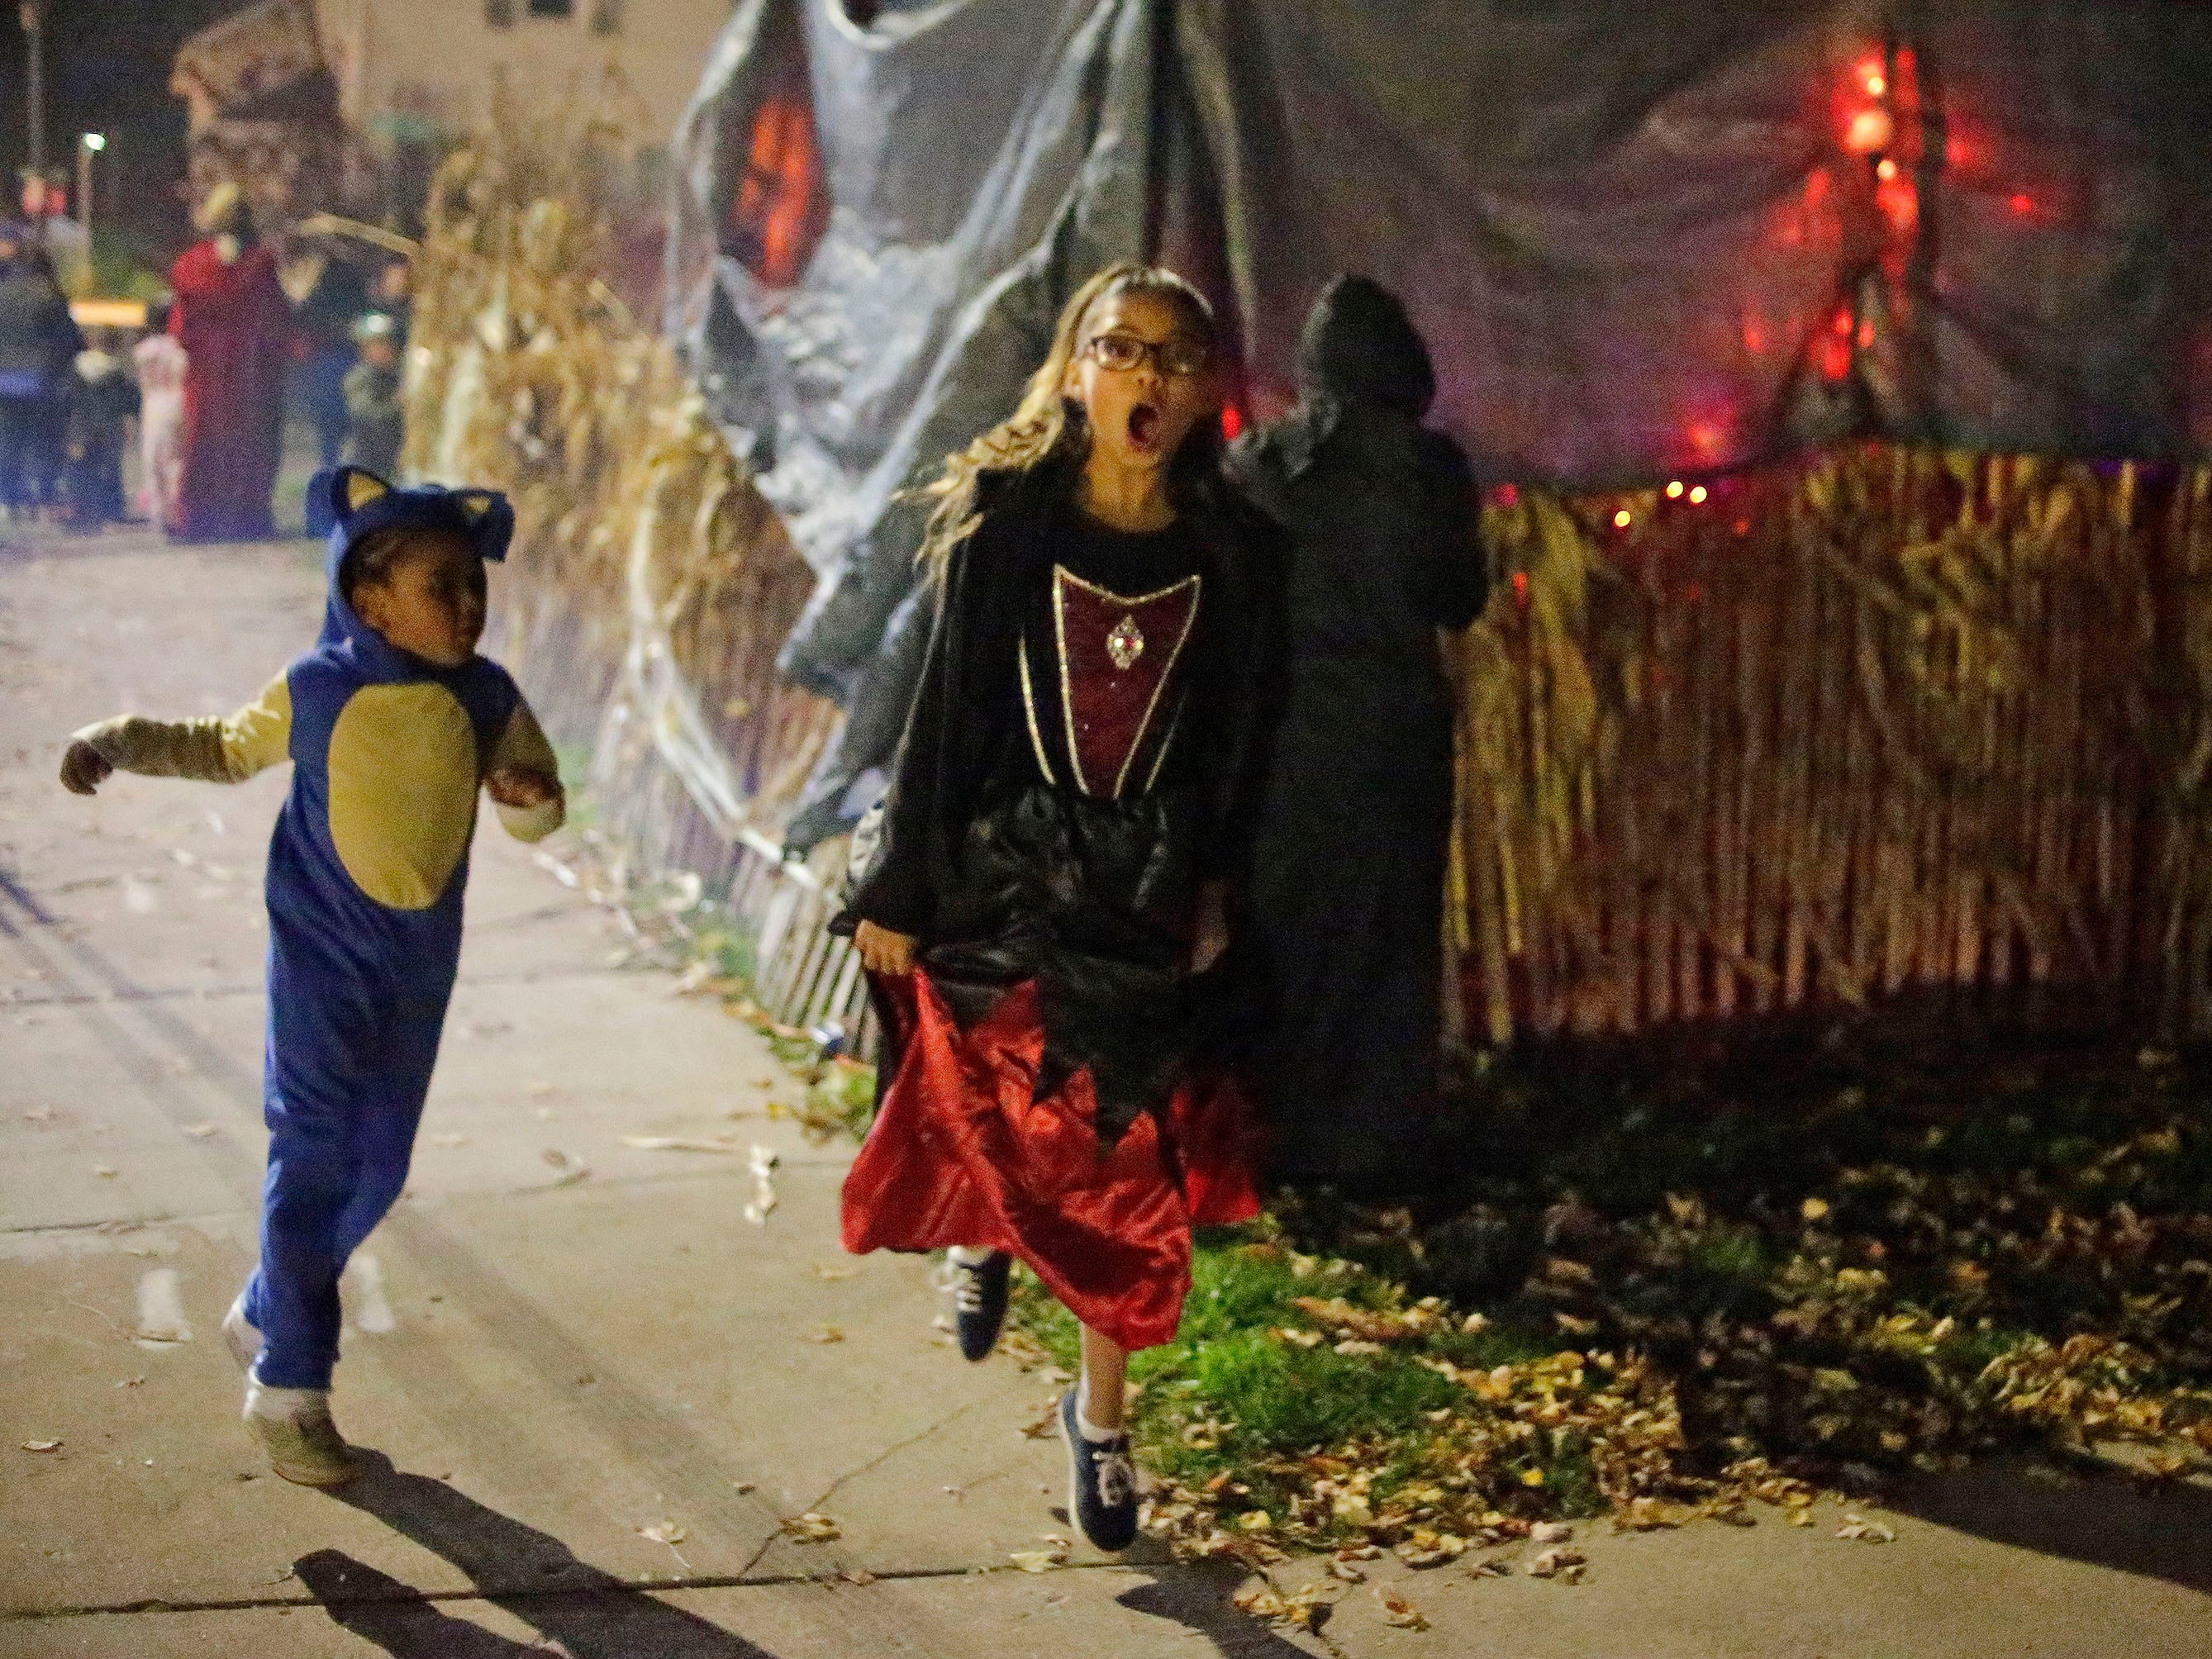 Trick or Treaters leave screaming from Scott Grunert's haunted yard during Trick or Treat, Wednesday, October 31, 2018, in Sheboygan, Wis.